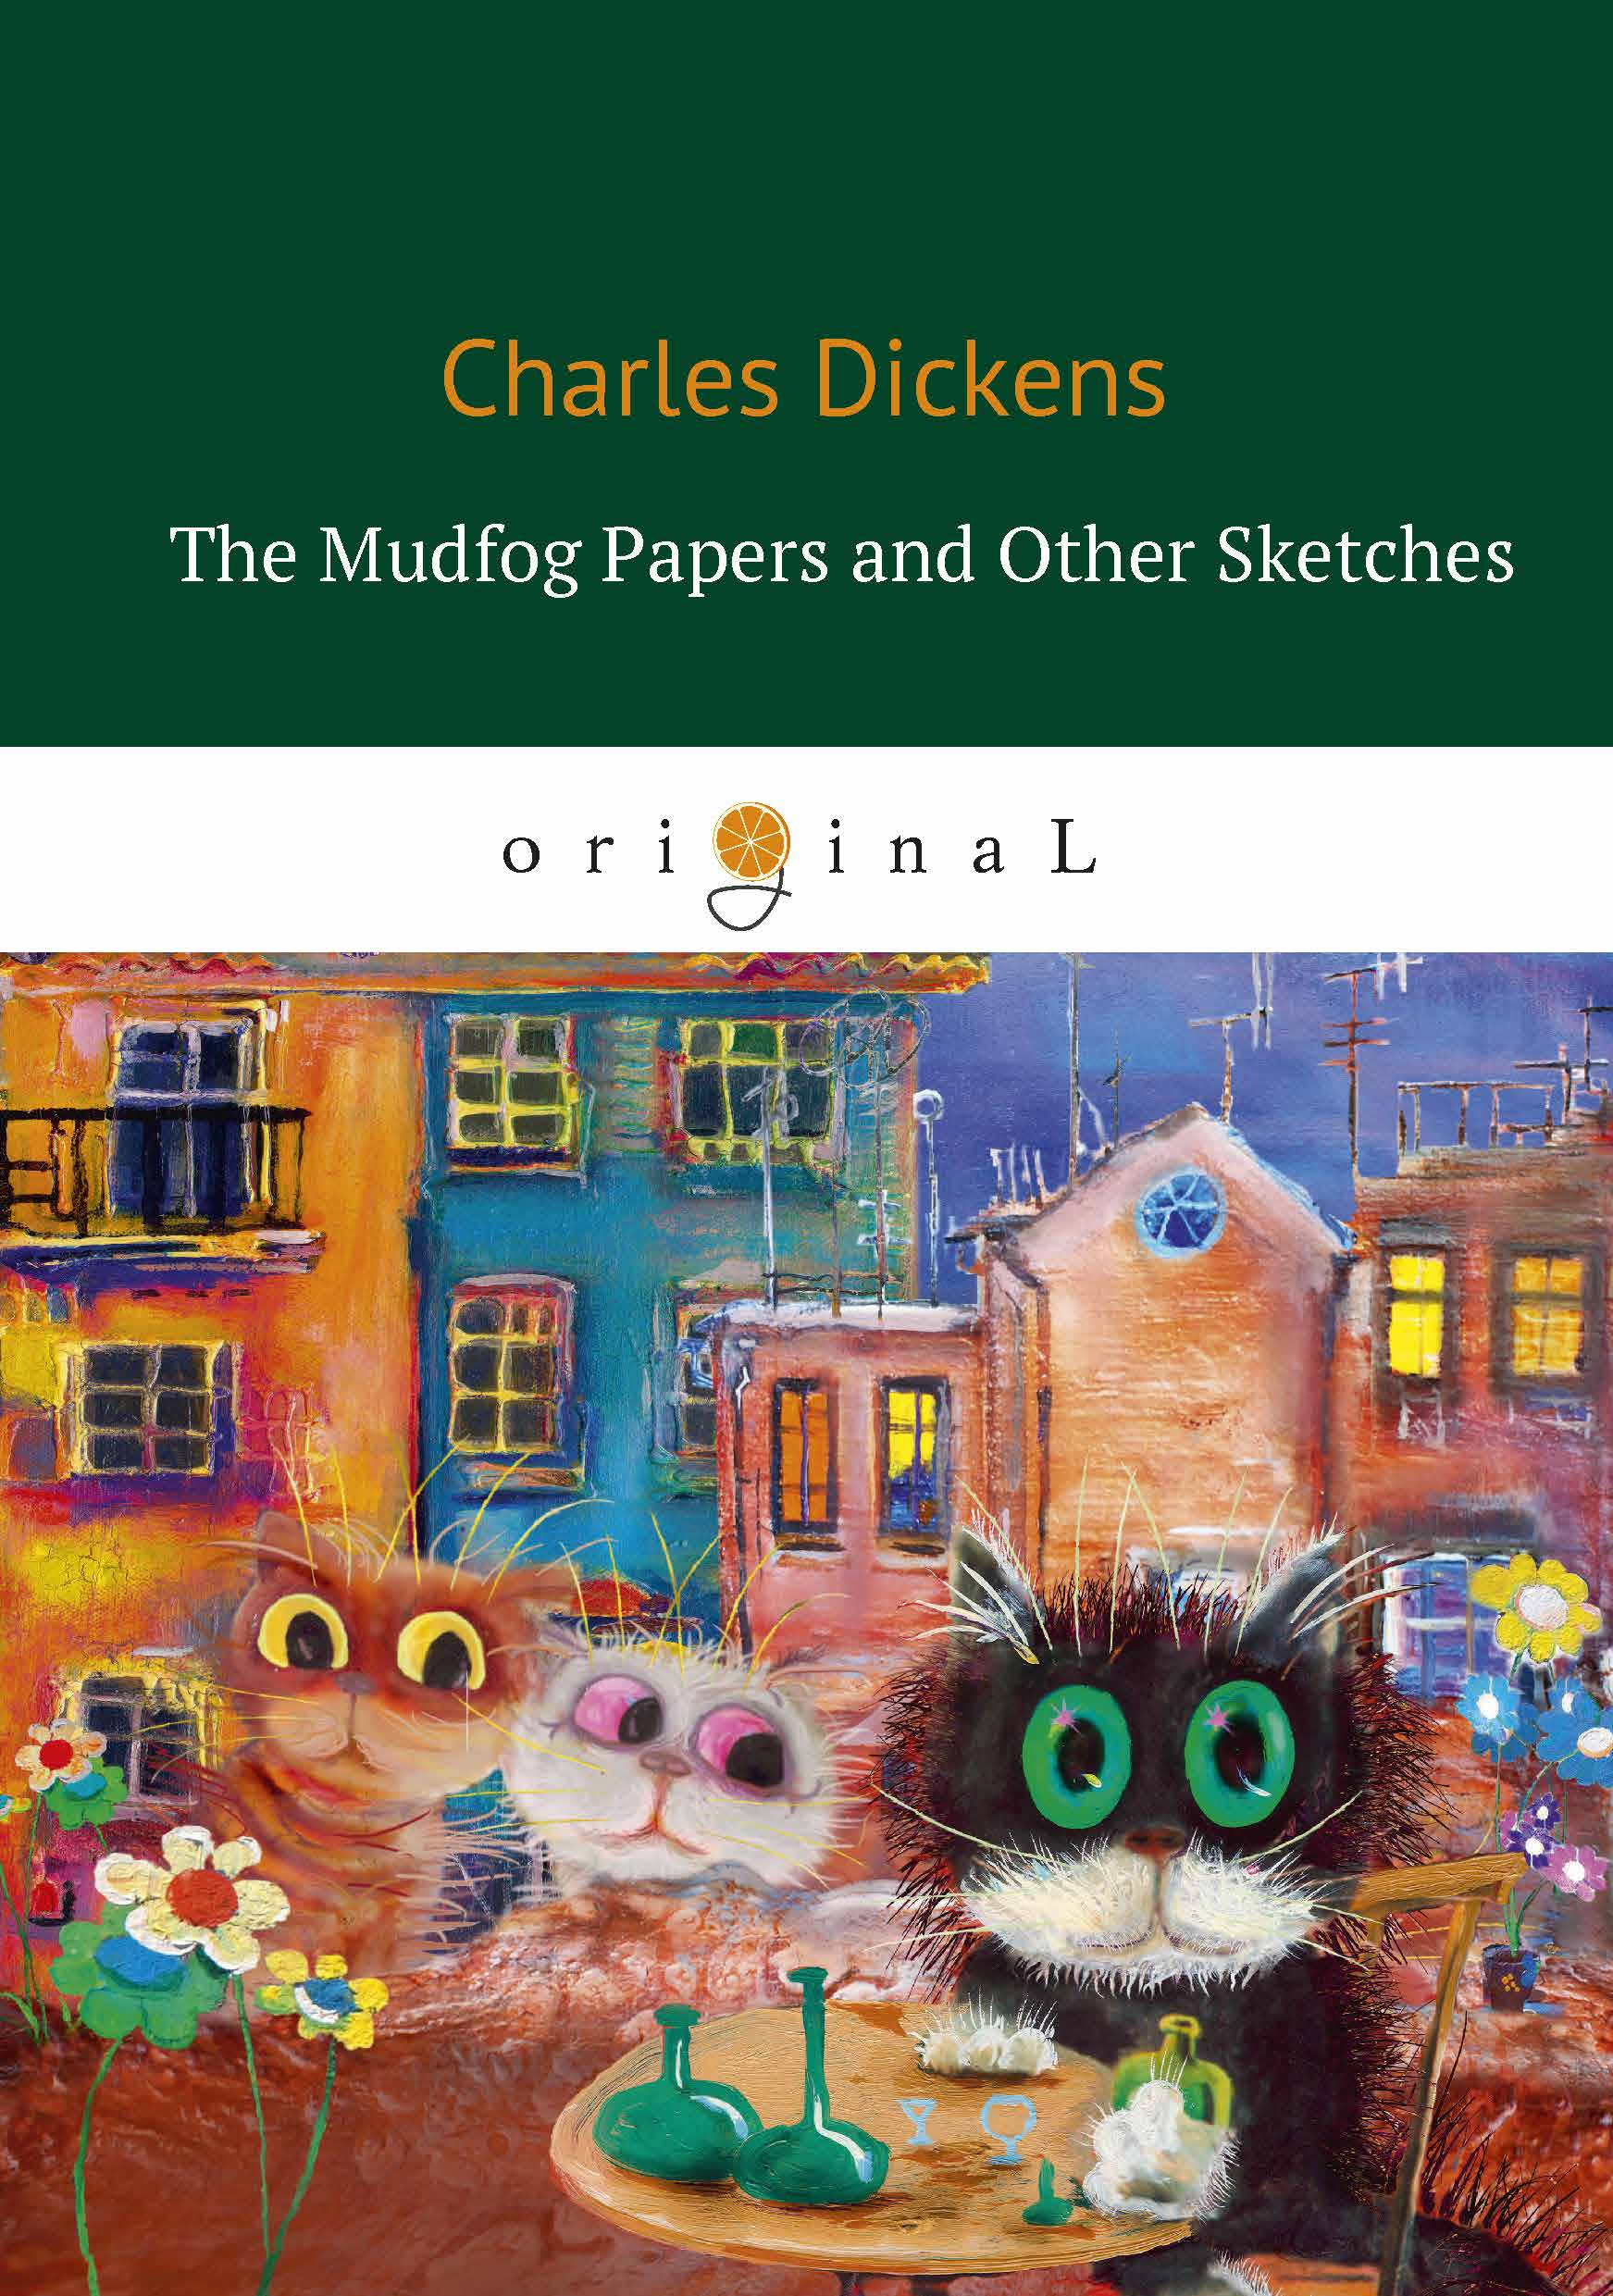 цена на Charles Dickens The Mudfog Papers and Other Sketches